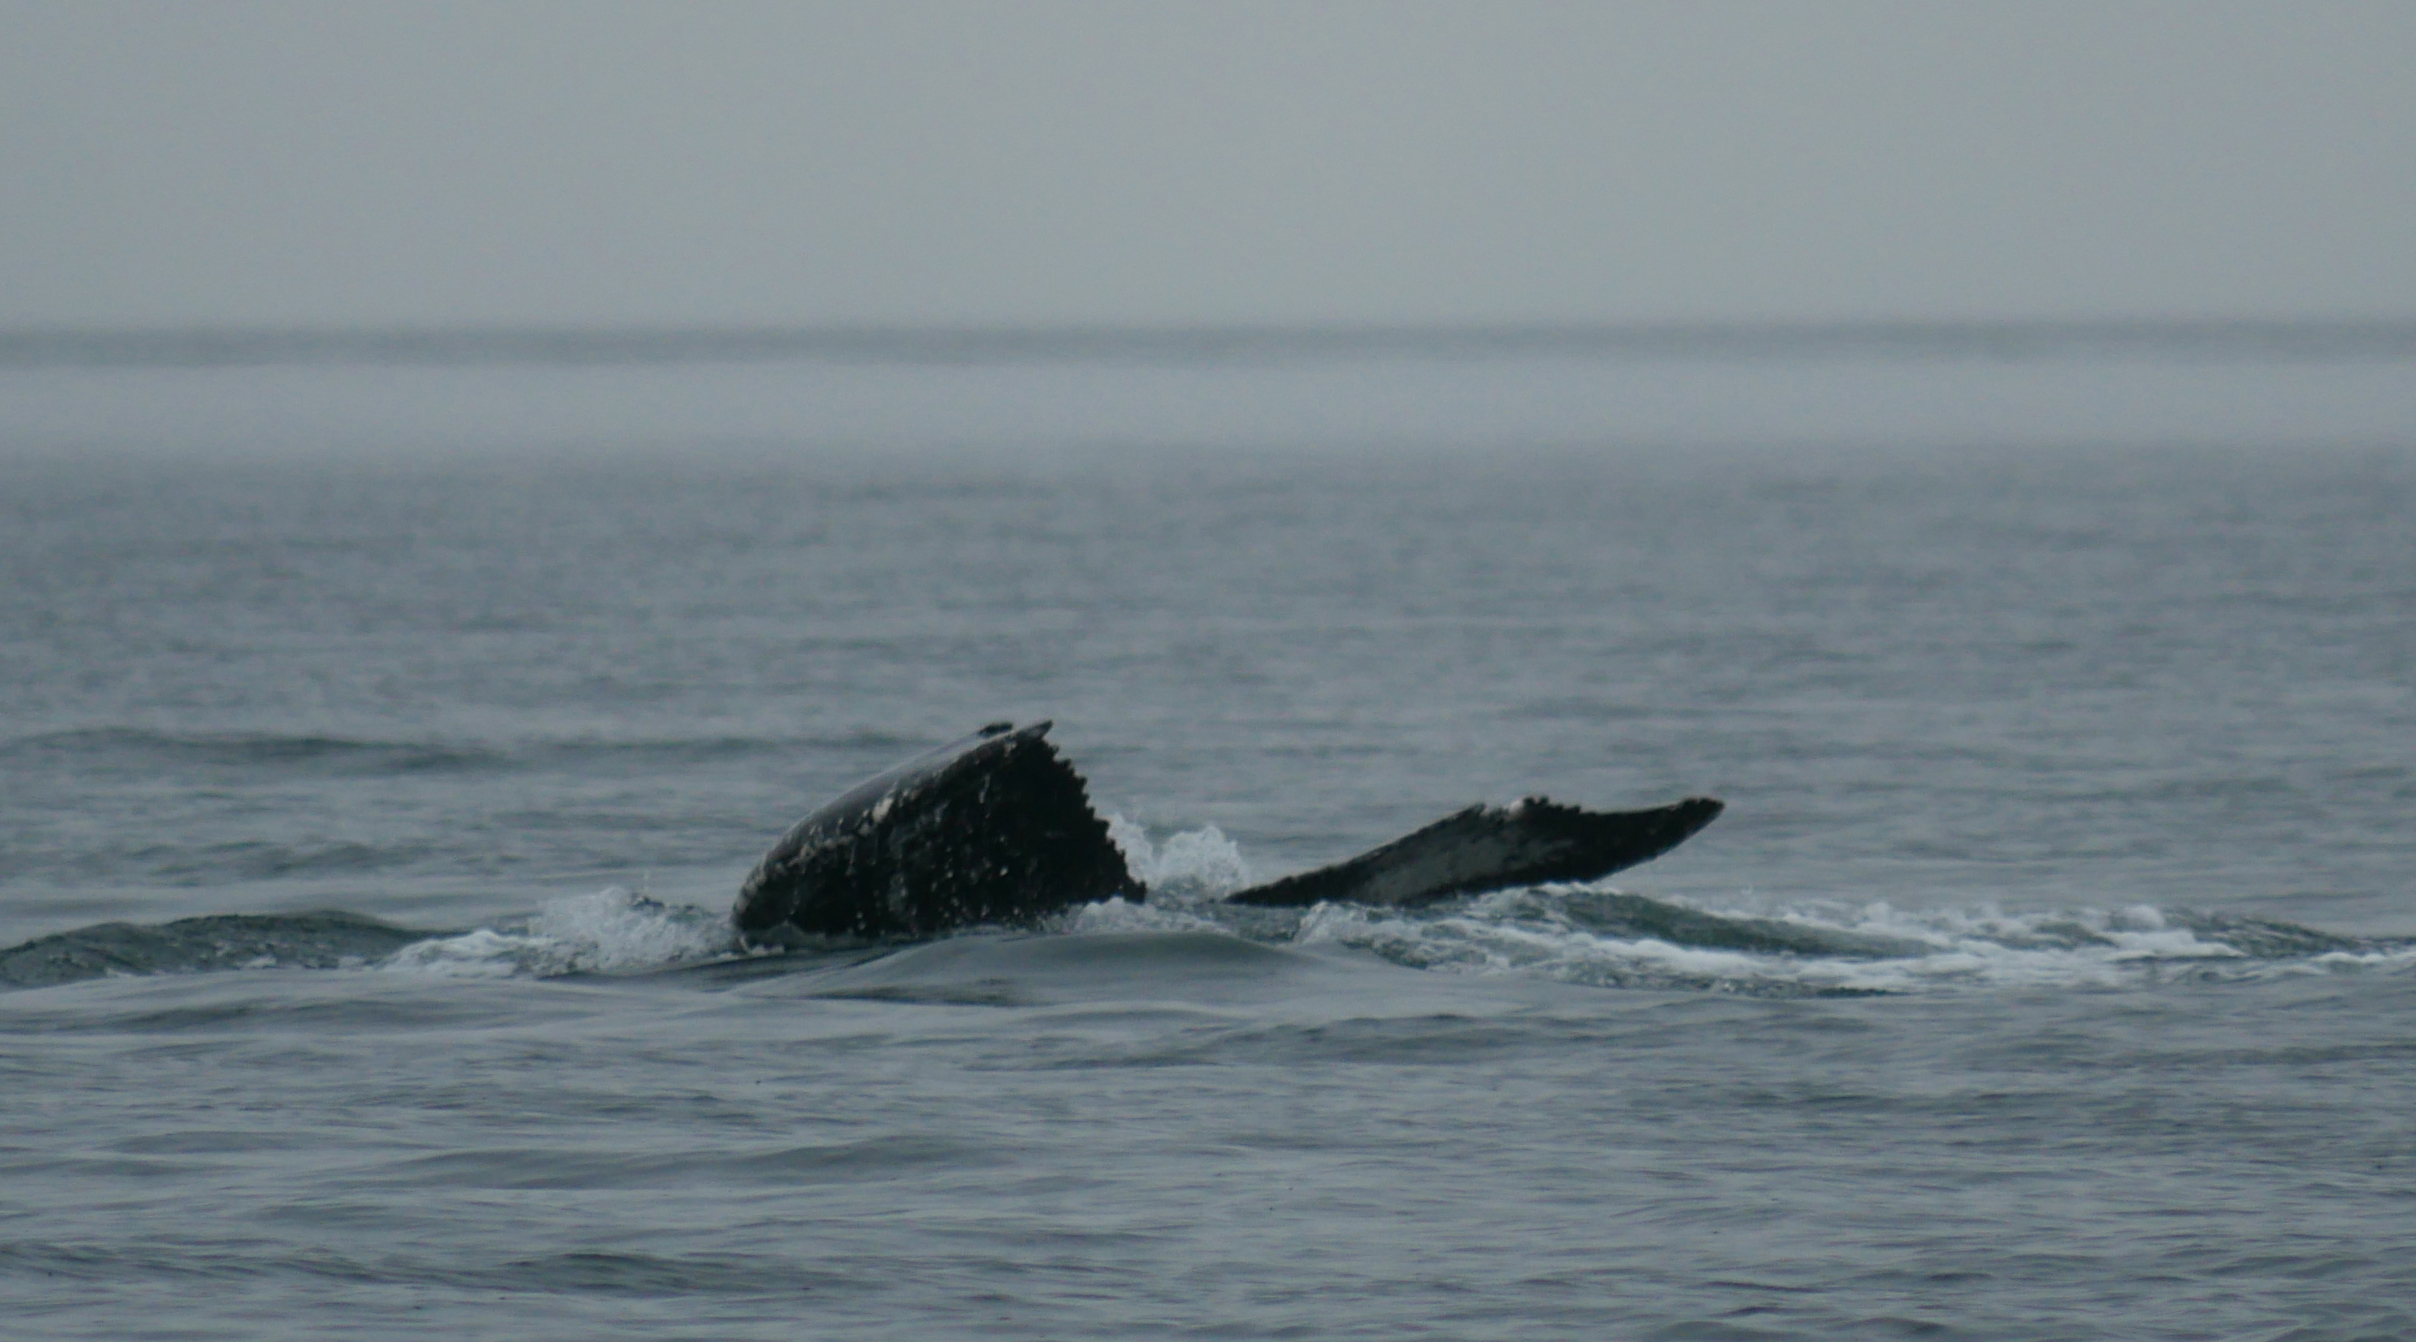 The white patch visible is one of the ways to ID the whales. Photo by Val Watson.